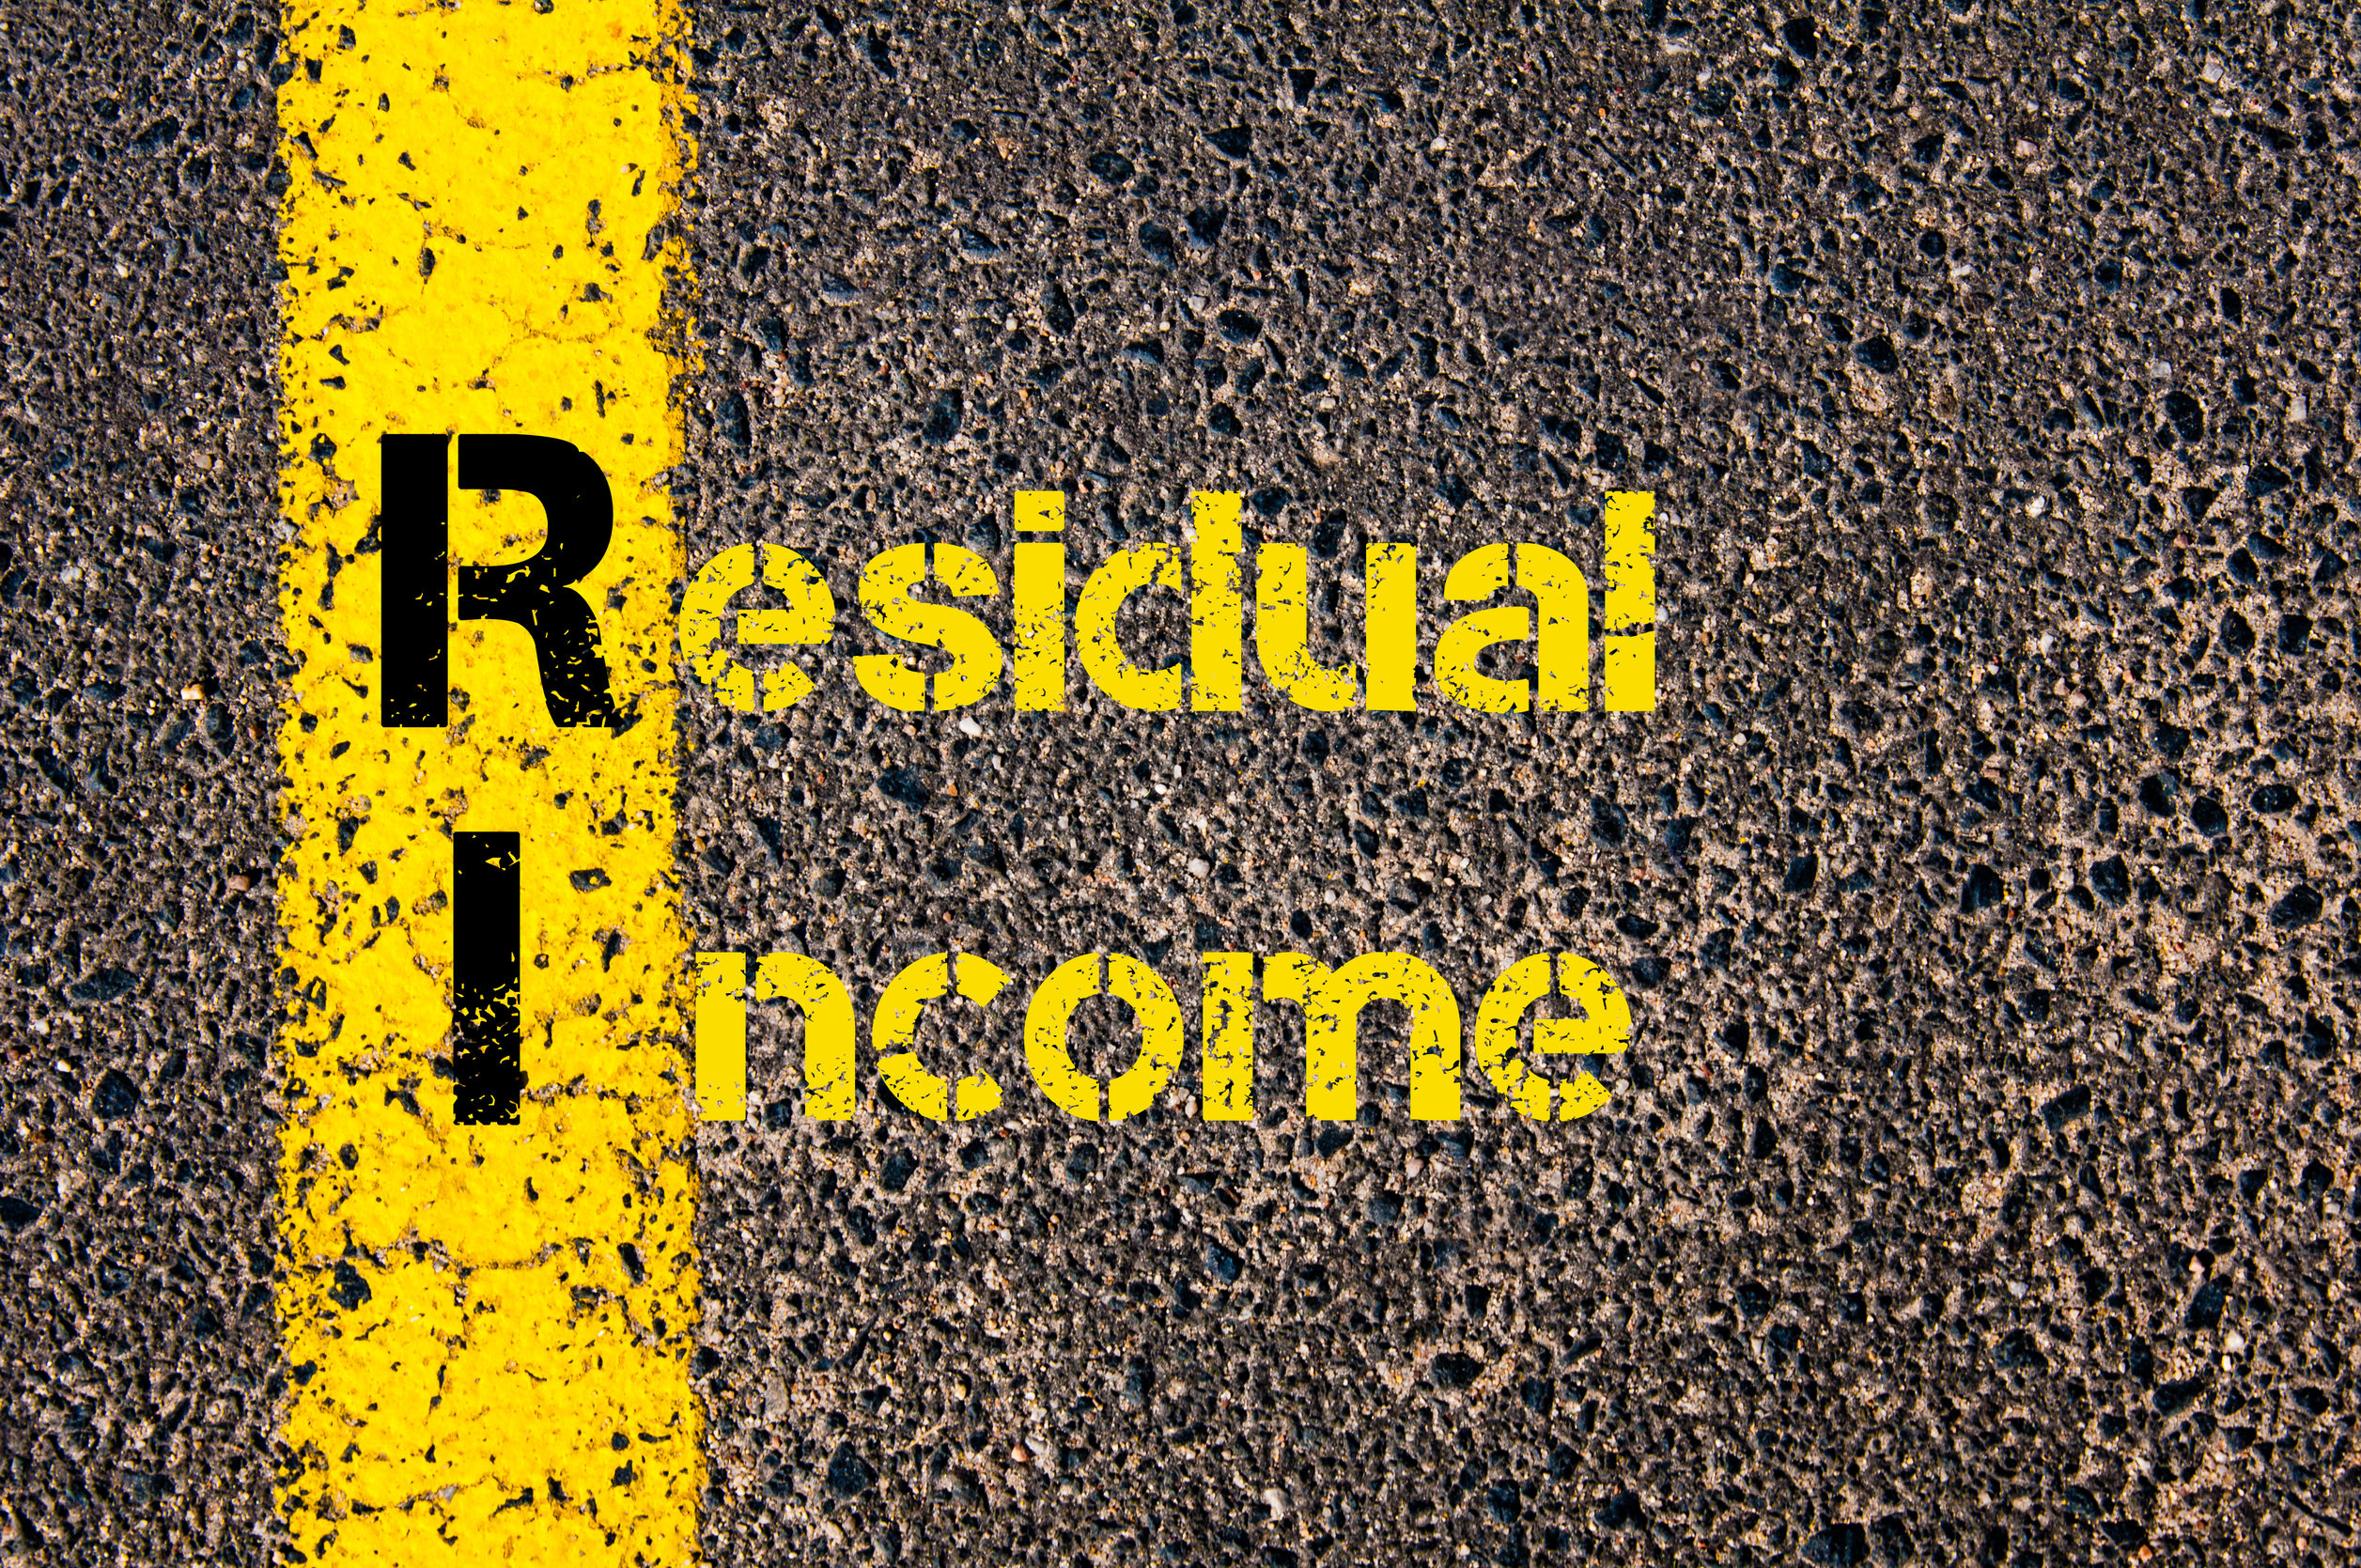 49048913 - concept image of accounting business acronym ri residual income written over road marking yellow paint line.